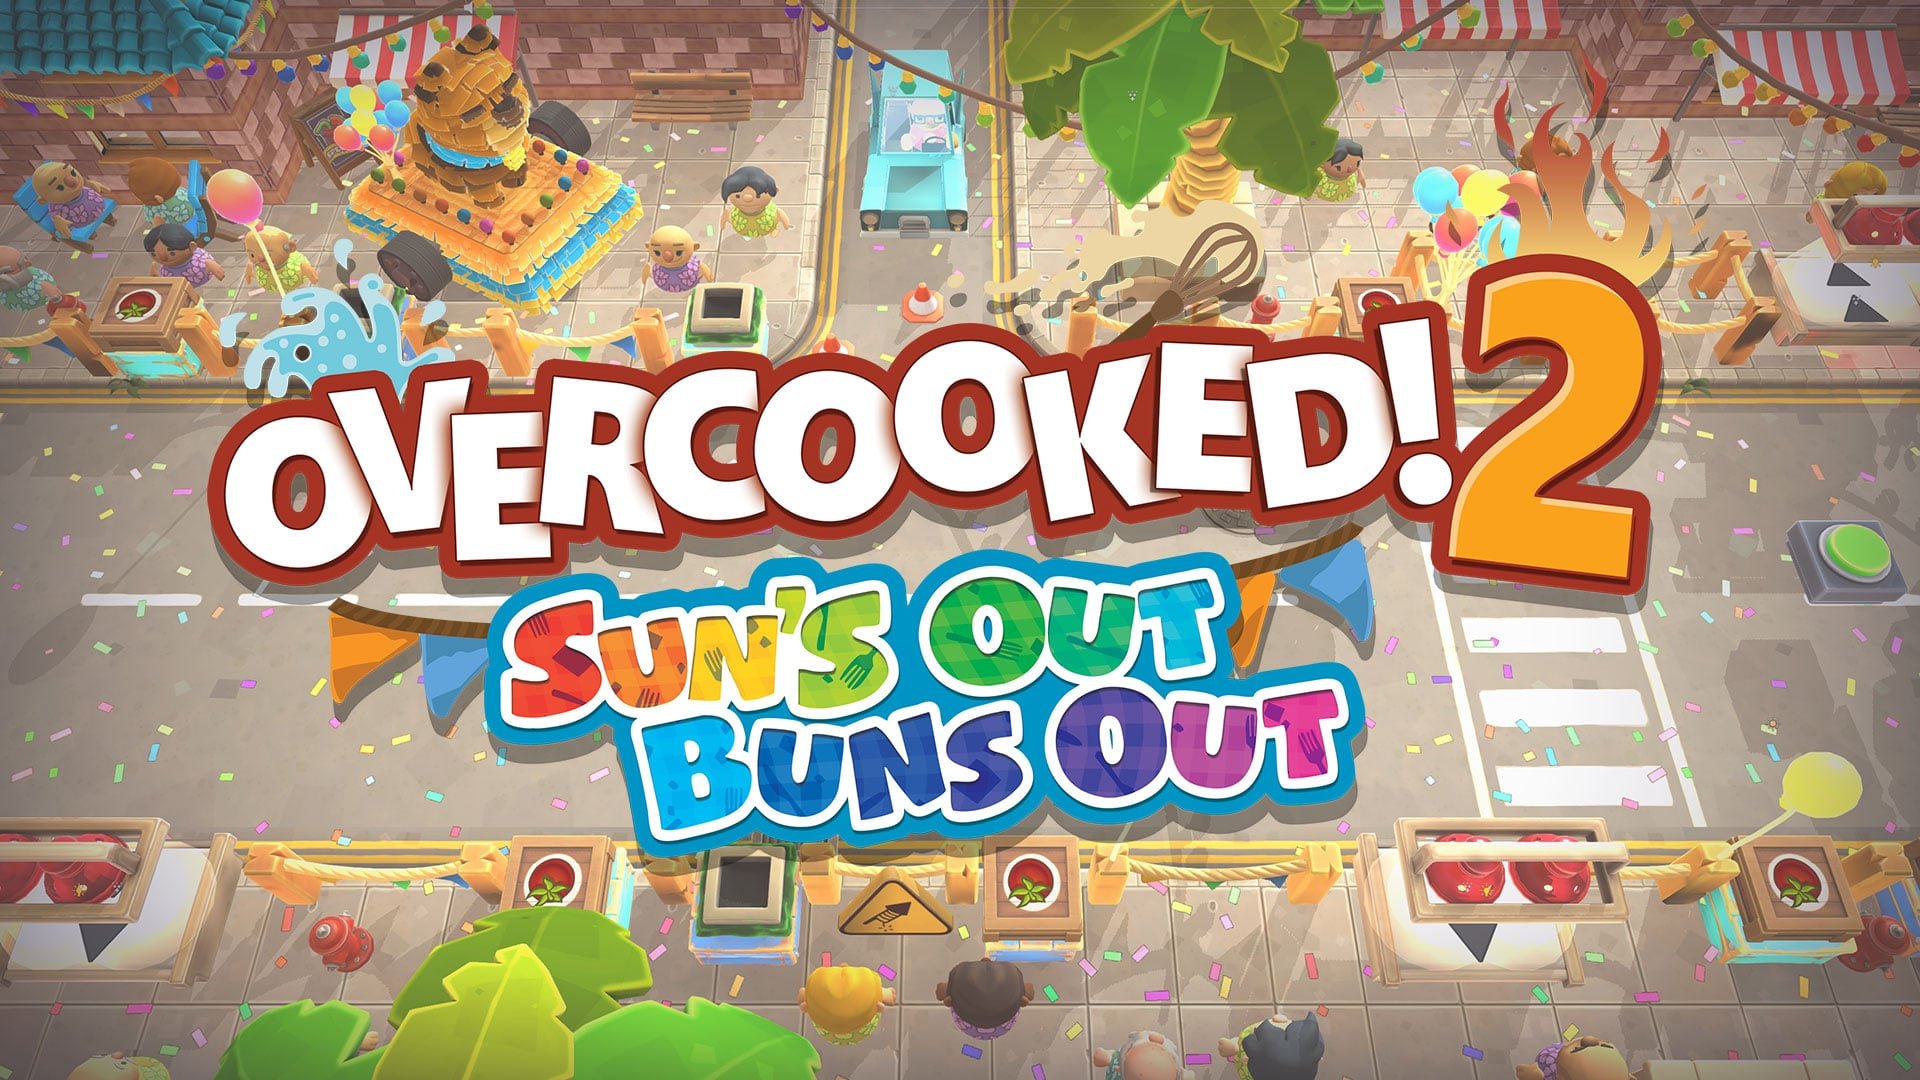 Overcooked! 2 – Sun's Out Buns Out DLC Pack announced